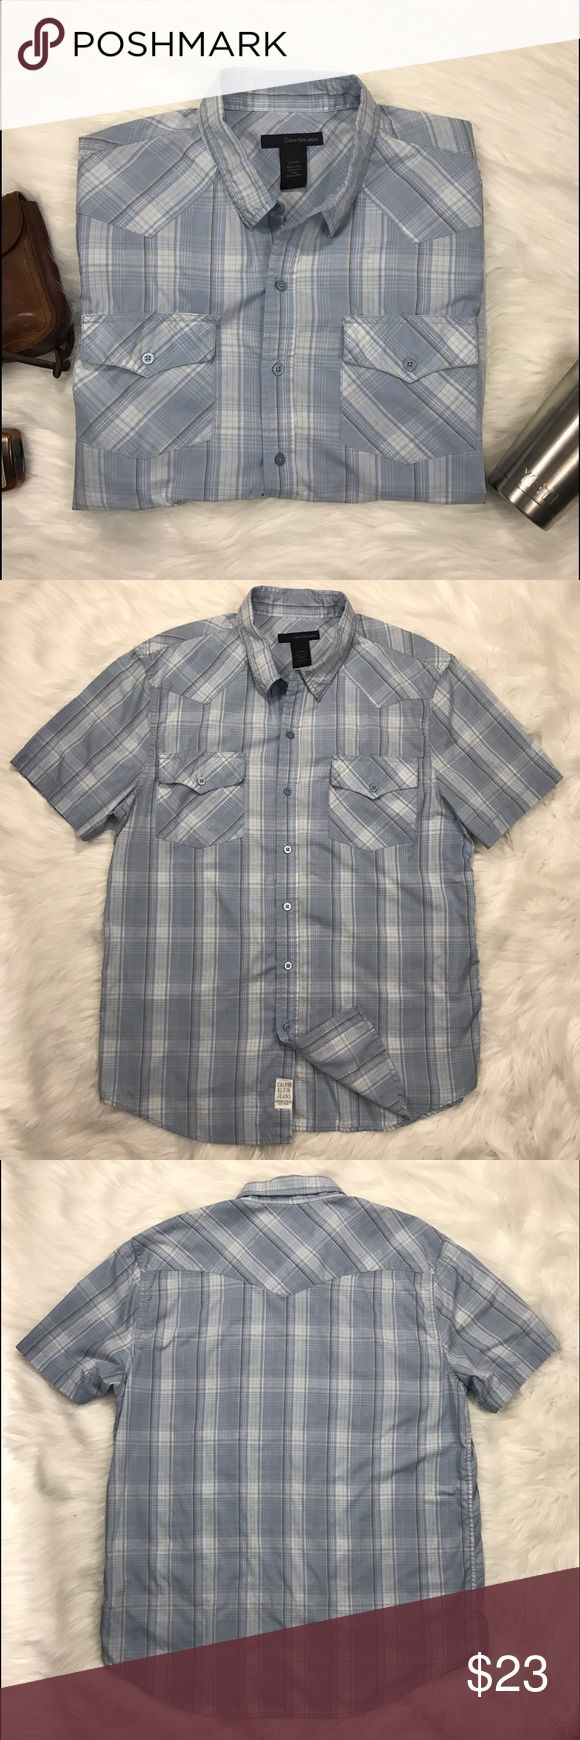 Calvin Klein - XL casual button down shirt. Calvin Klein - Men's super soft, casual plaid button downs short sleeve shirt. Look good and feel great in this shirt! Get your man out on a date night looking sharp in this shirt! Lightly pre-loved condition. Calvin Klein Jeans Shirts Casual Button Down Shirts